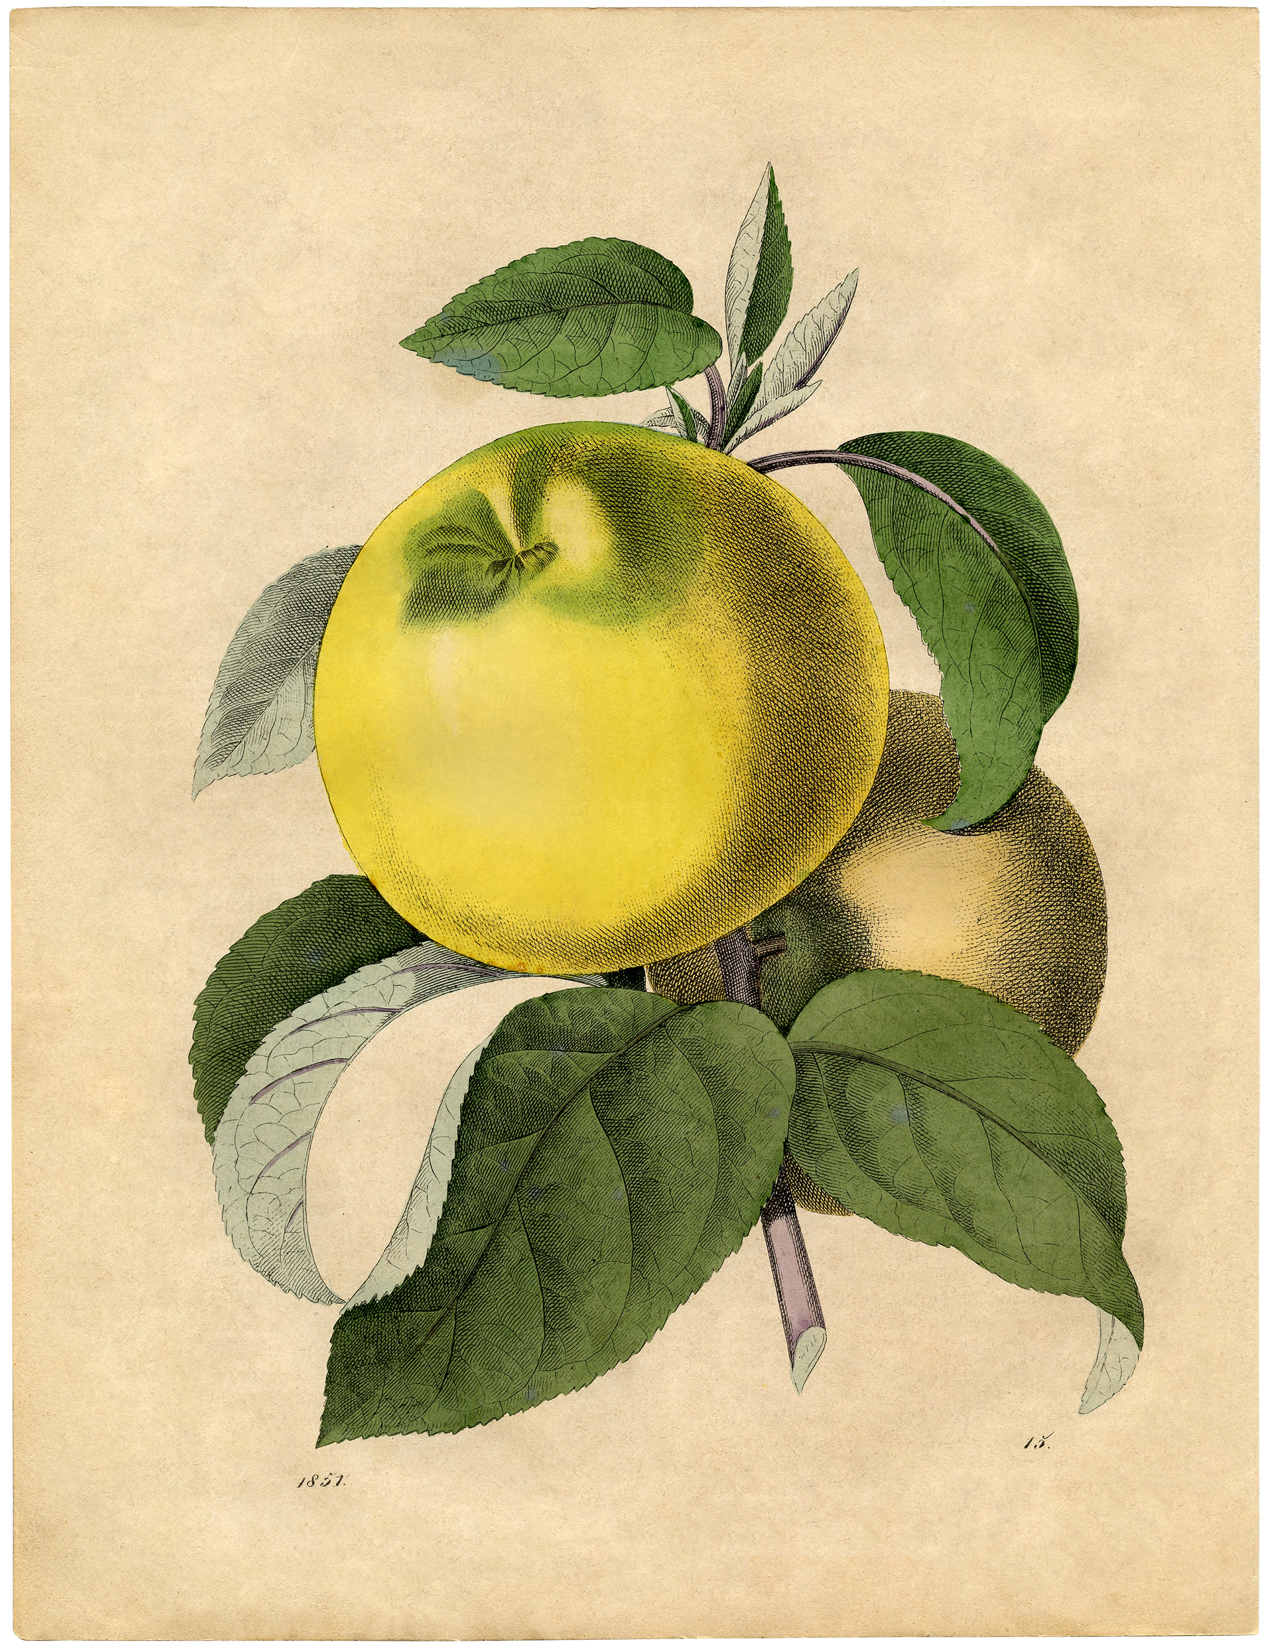 Free Botanical Art Prints - Apples - The Graphics Fairy